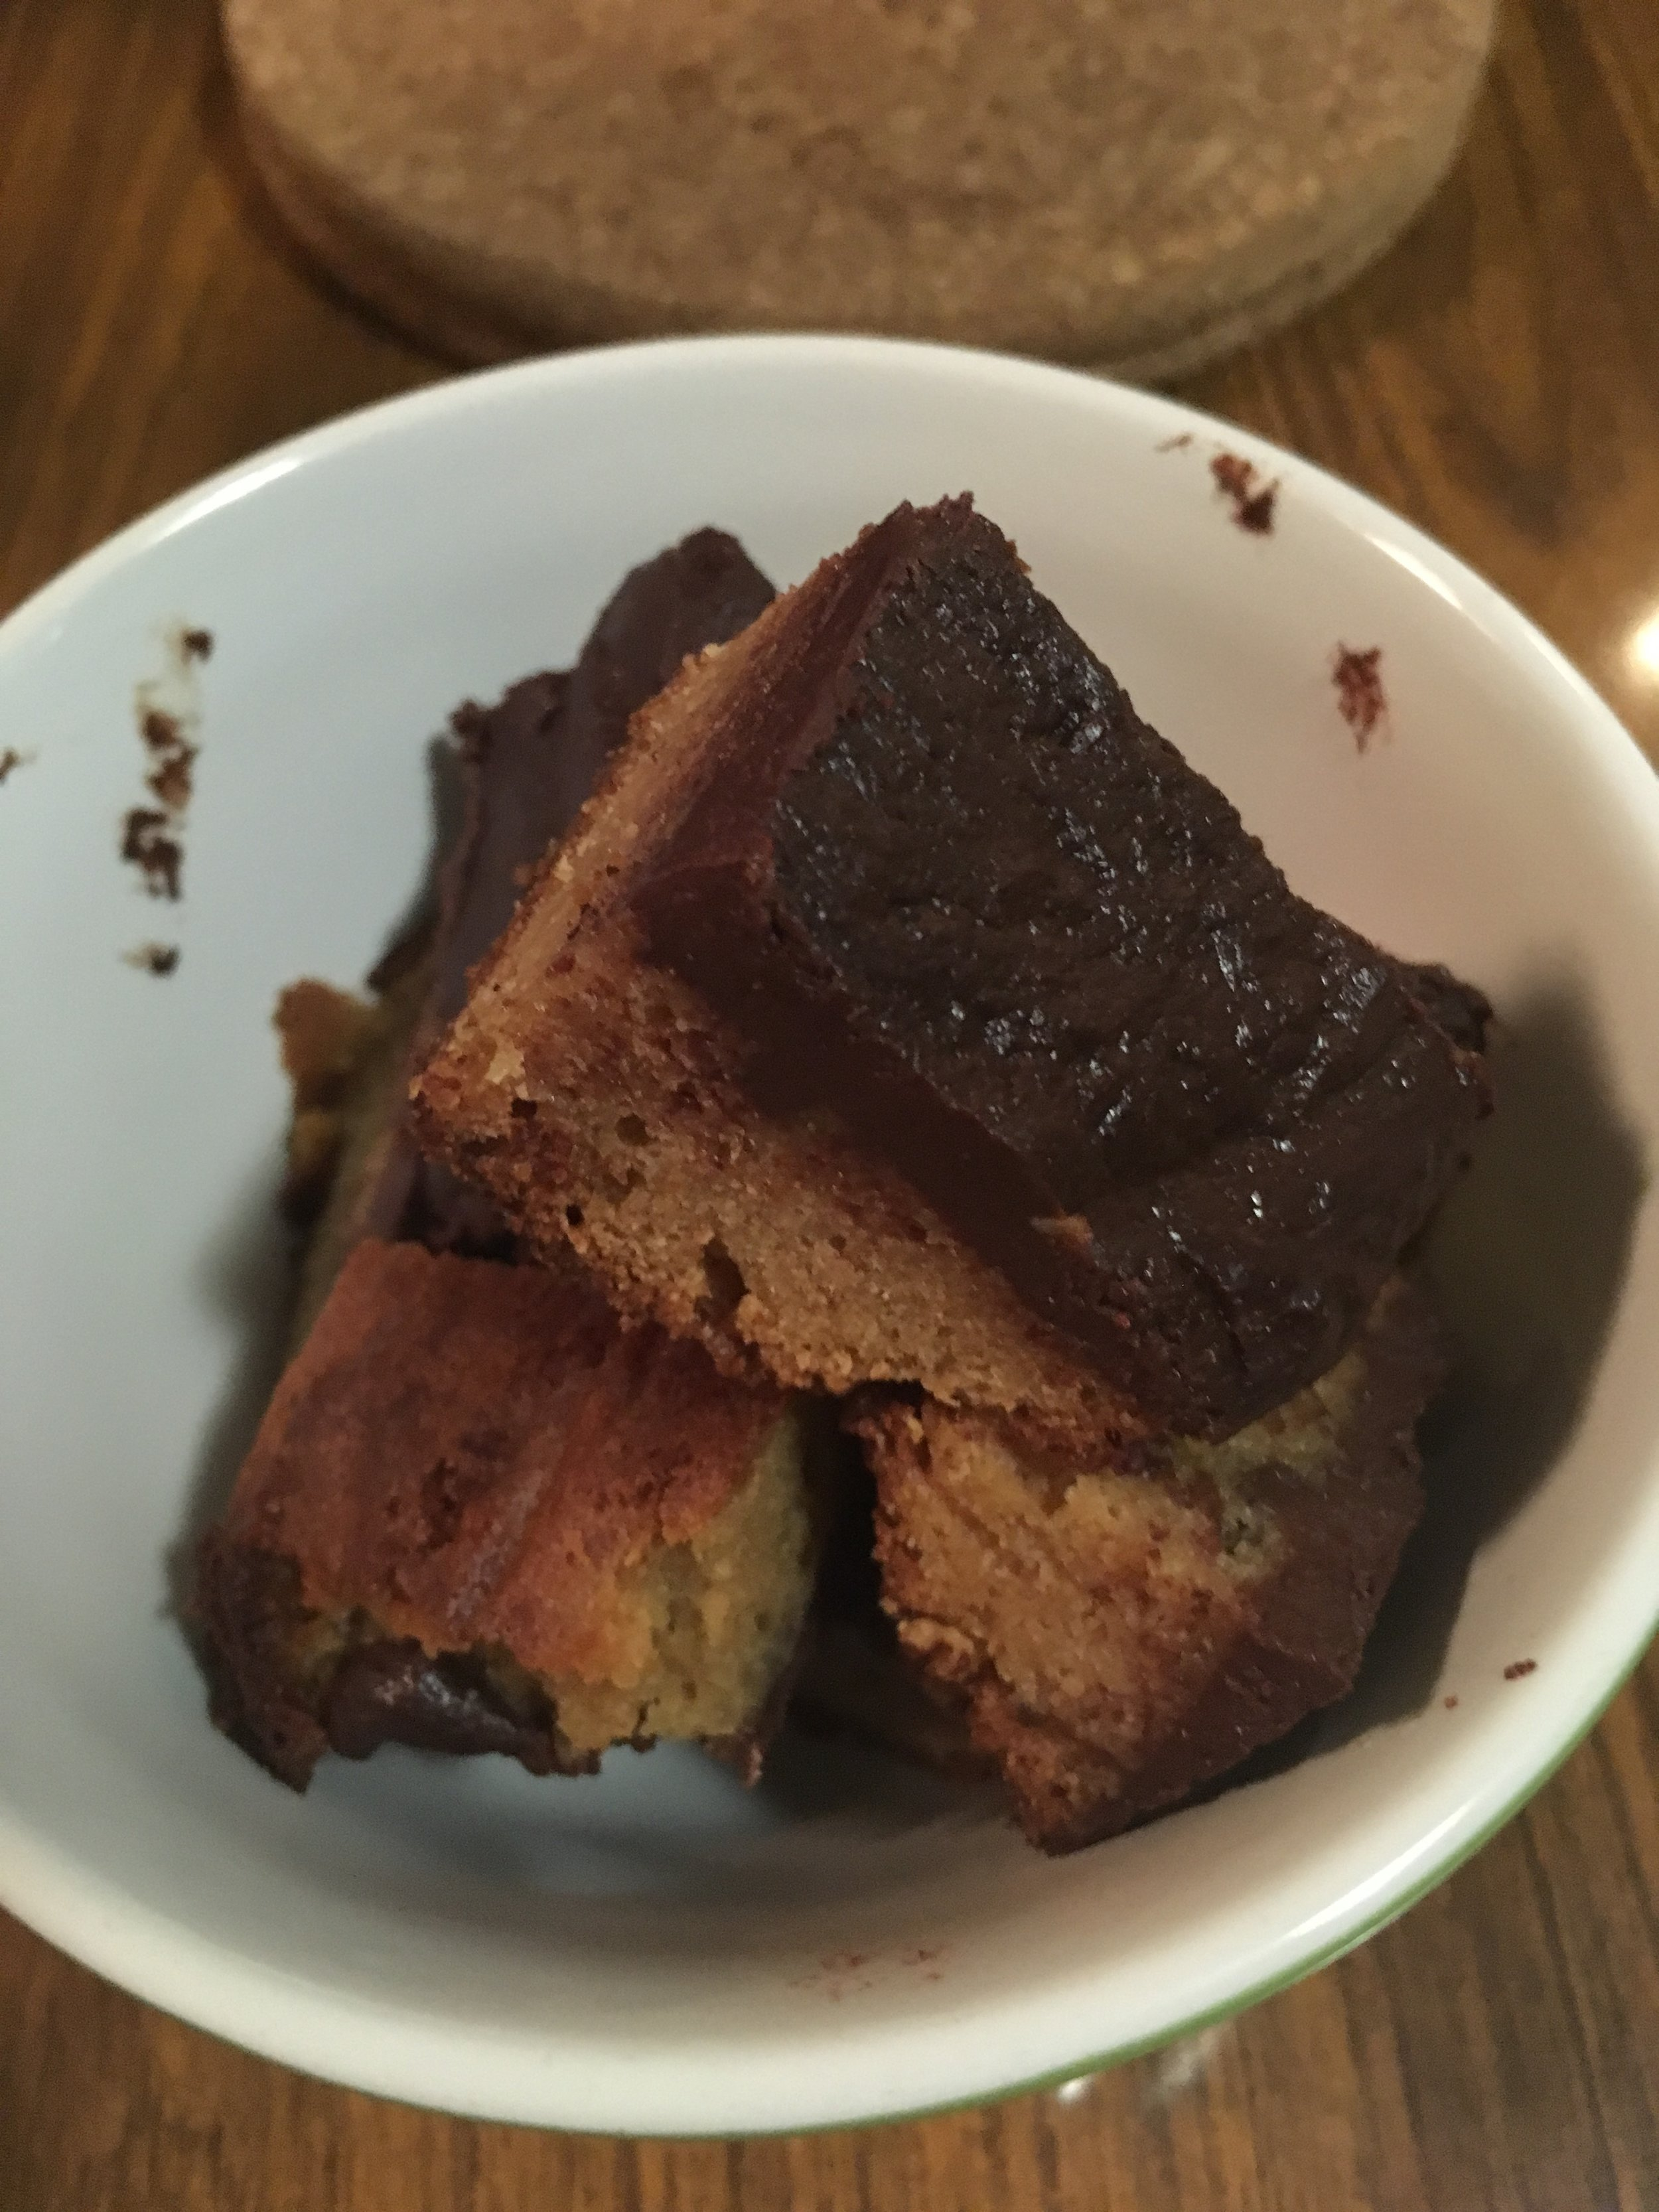 - Tip the brownies unto a plate and pour the melted chocolate mixture the hot brownies and enjoy!